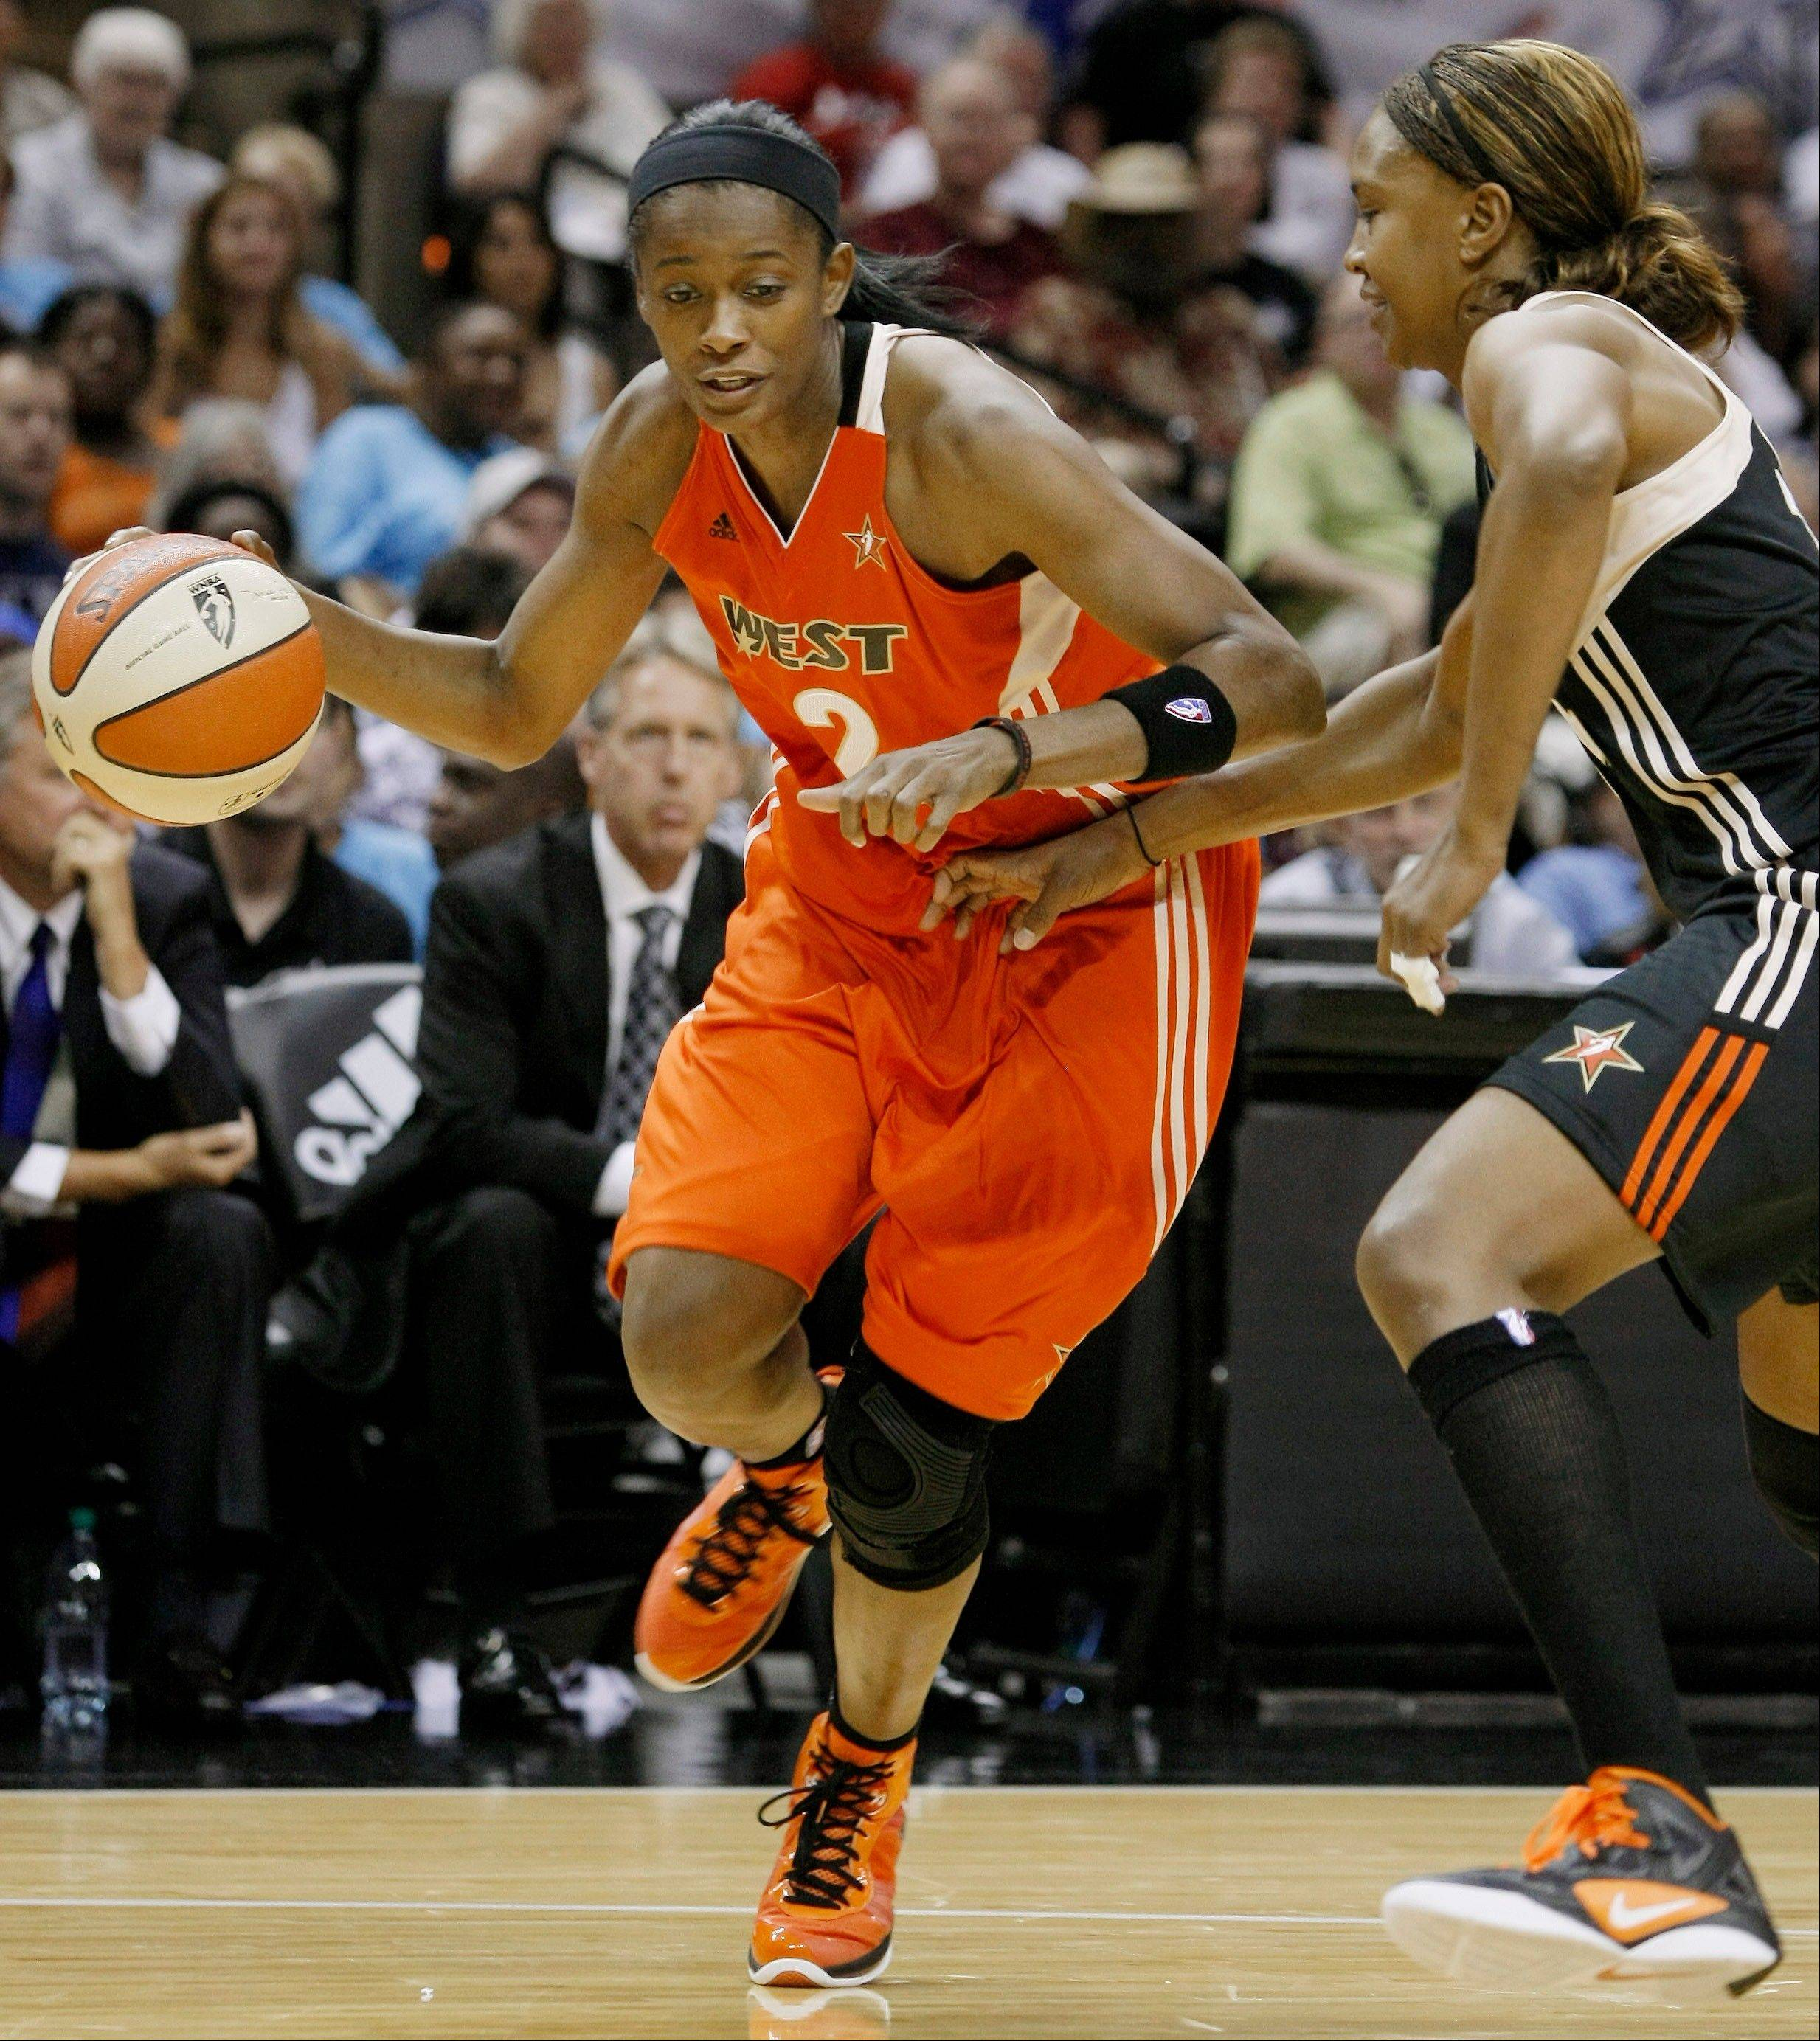 WNBA all-star Swin Cash, left, is expected to help the Chicago Sky make the playoffs for the first time. The Sky traded its top draft pick for Cash and won't have a first-round selection in Monday's WNBA draft.